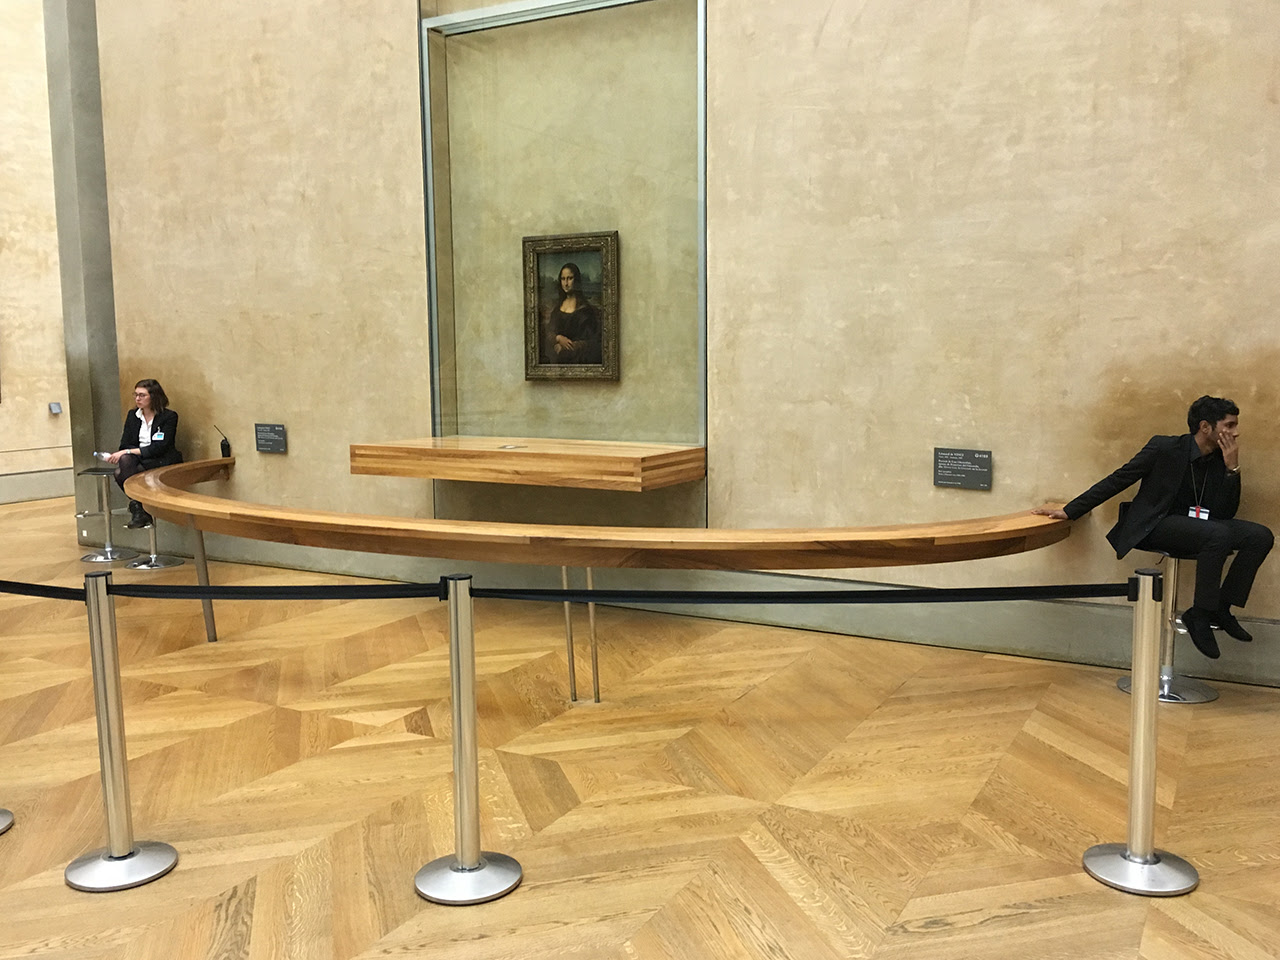 The Mona Lisa lacking for visitors at the Louvre (photo by Rob Colvin for Hyperallergic)